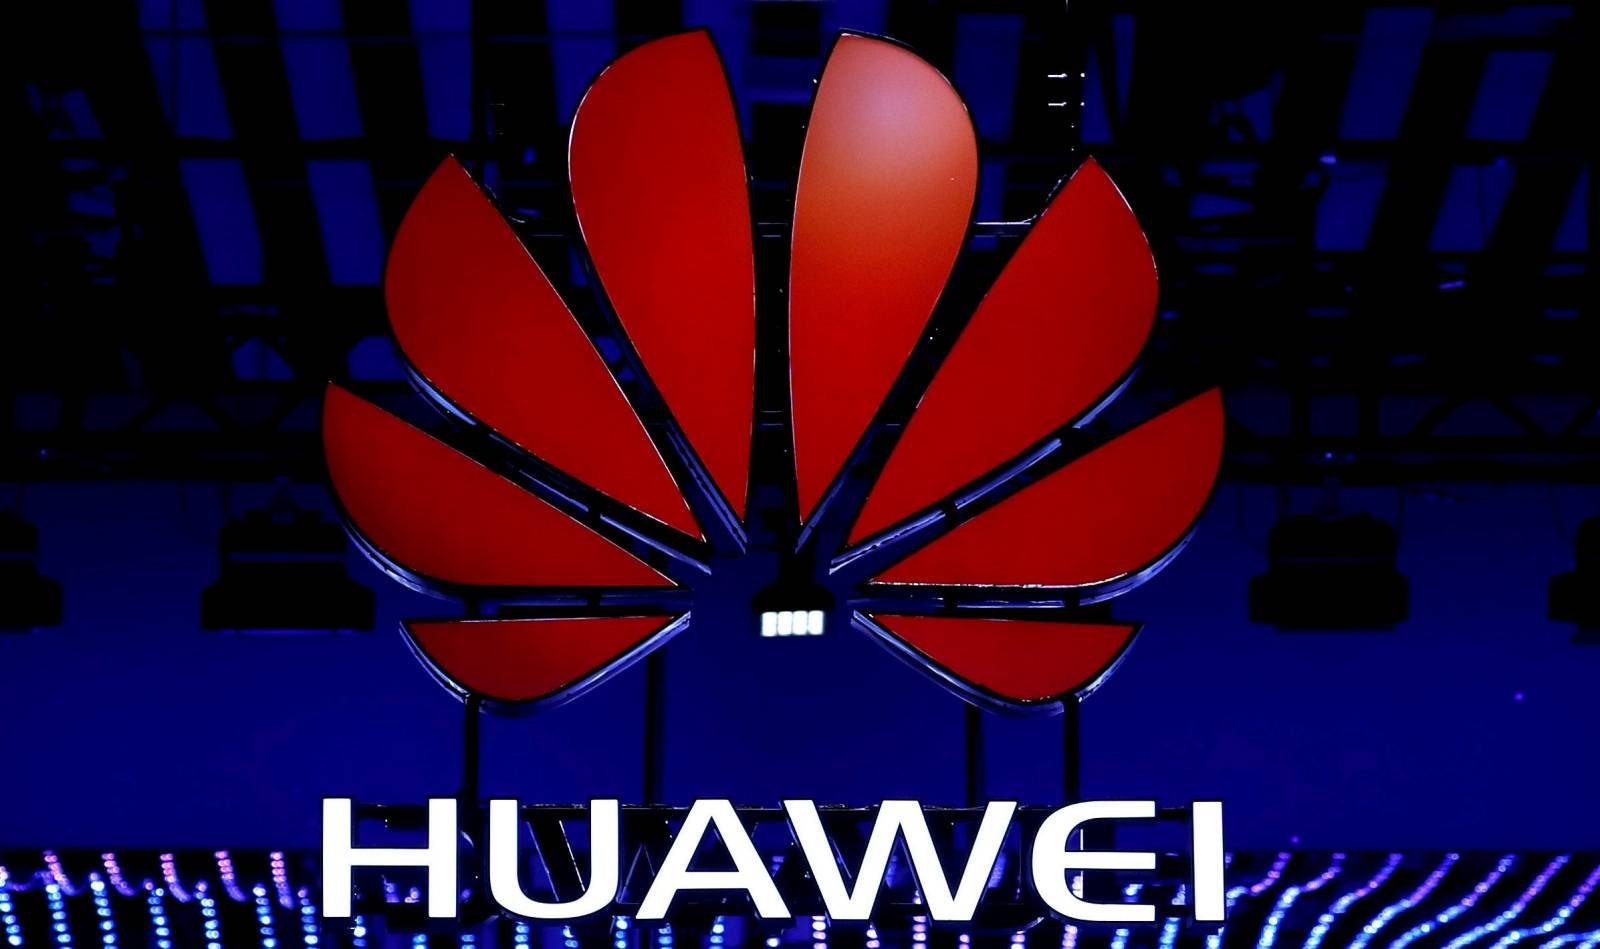 huawei crestere